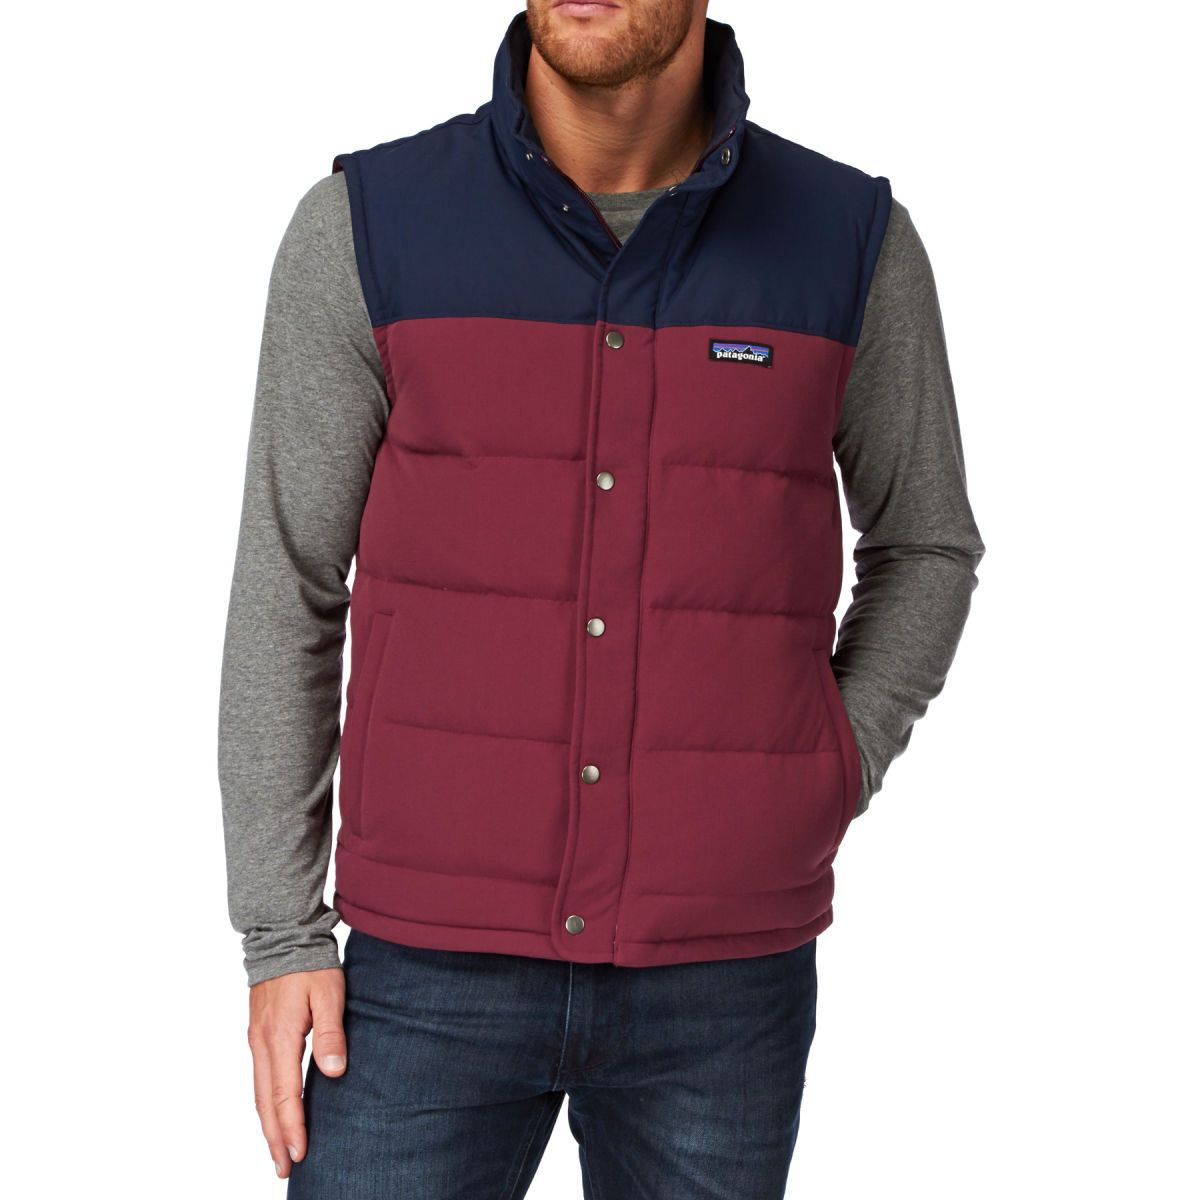 mens patagonia oxblood YES #patagoniafleece #patagonia #llbeanfleece At  Eagleages.com we offer